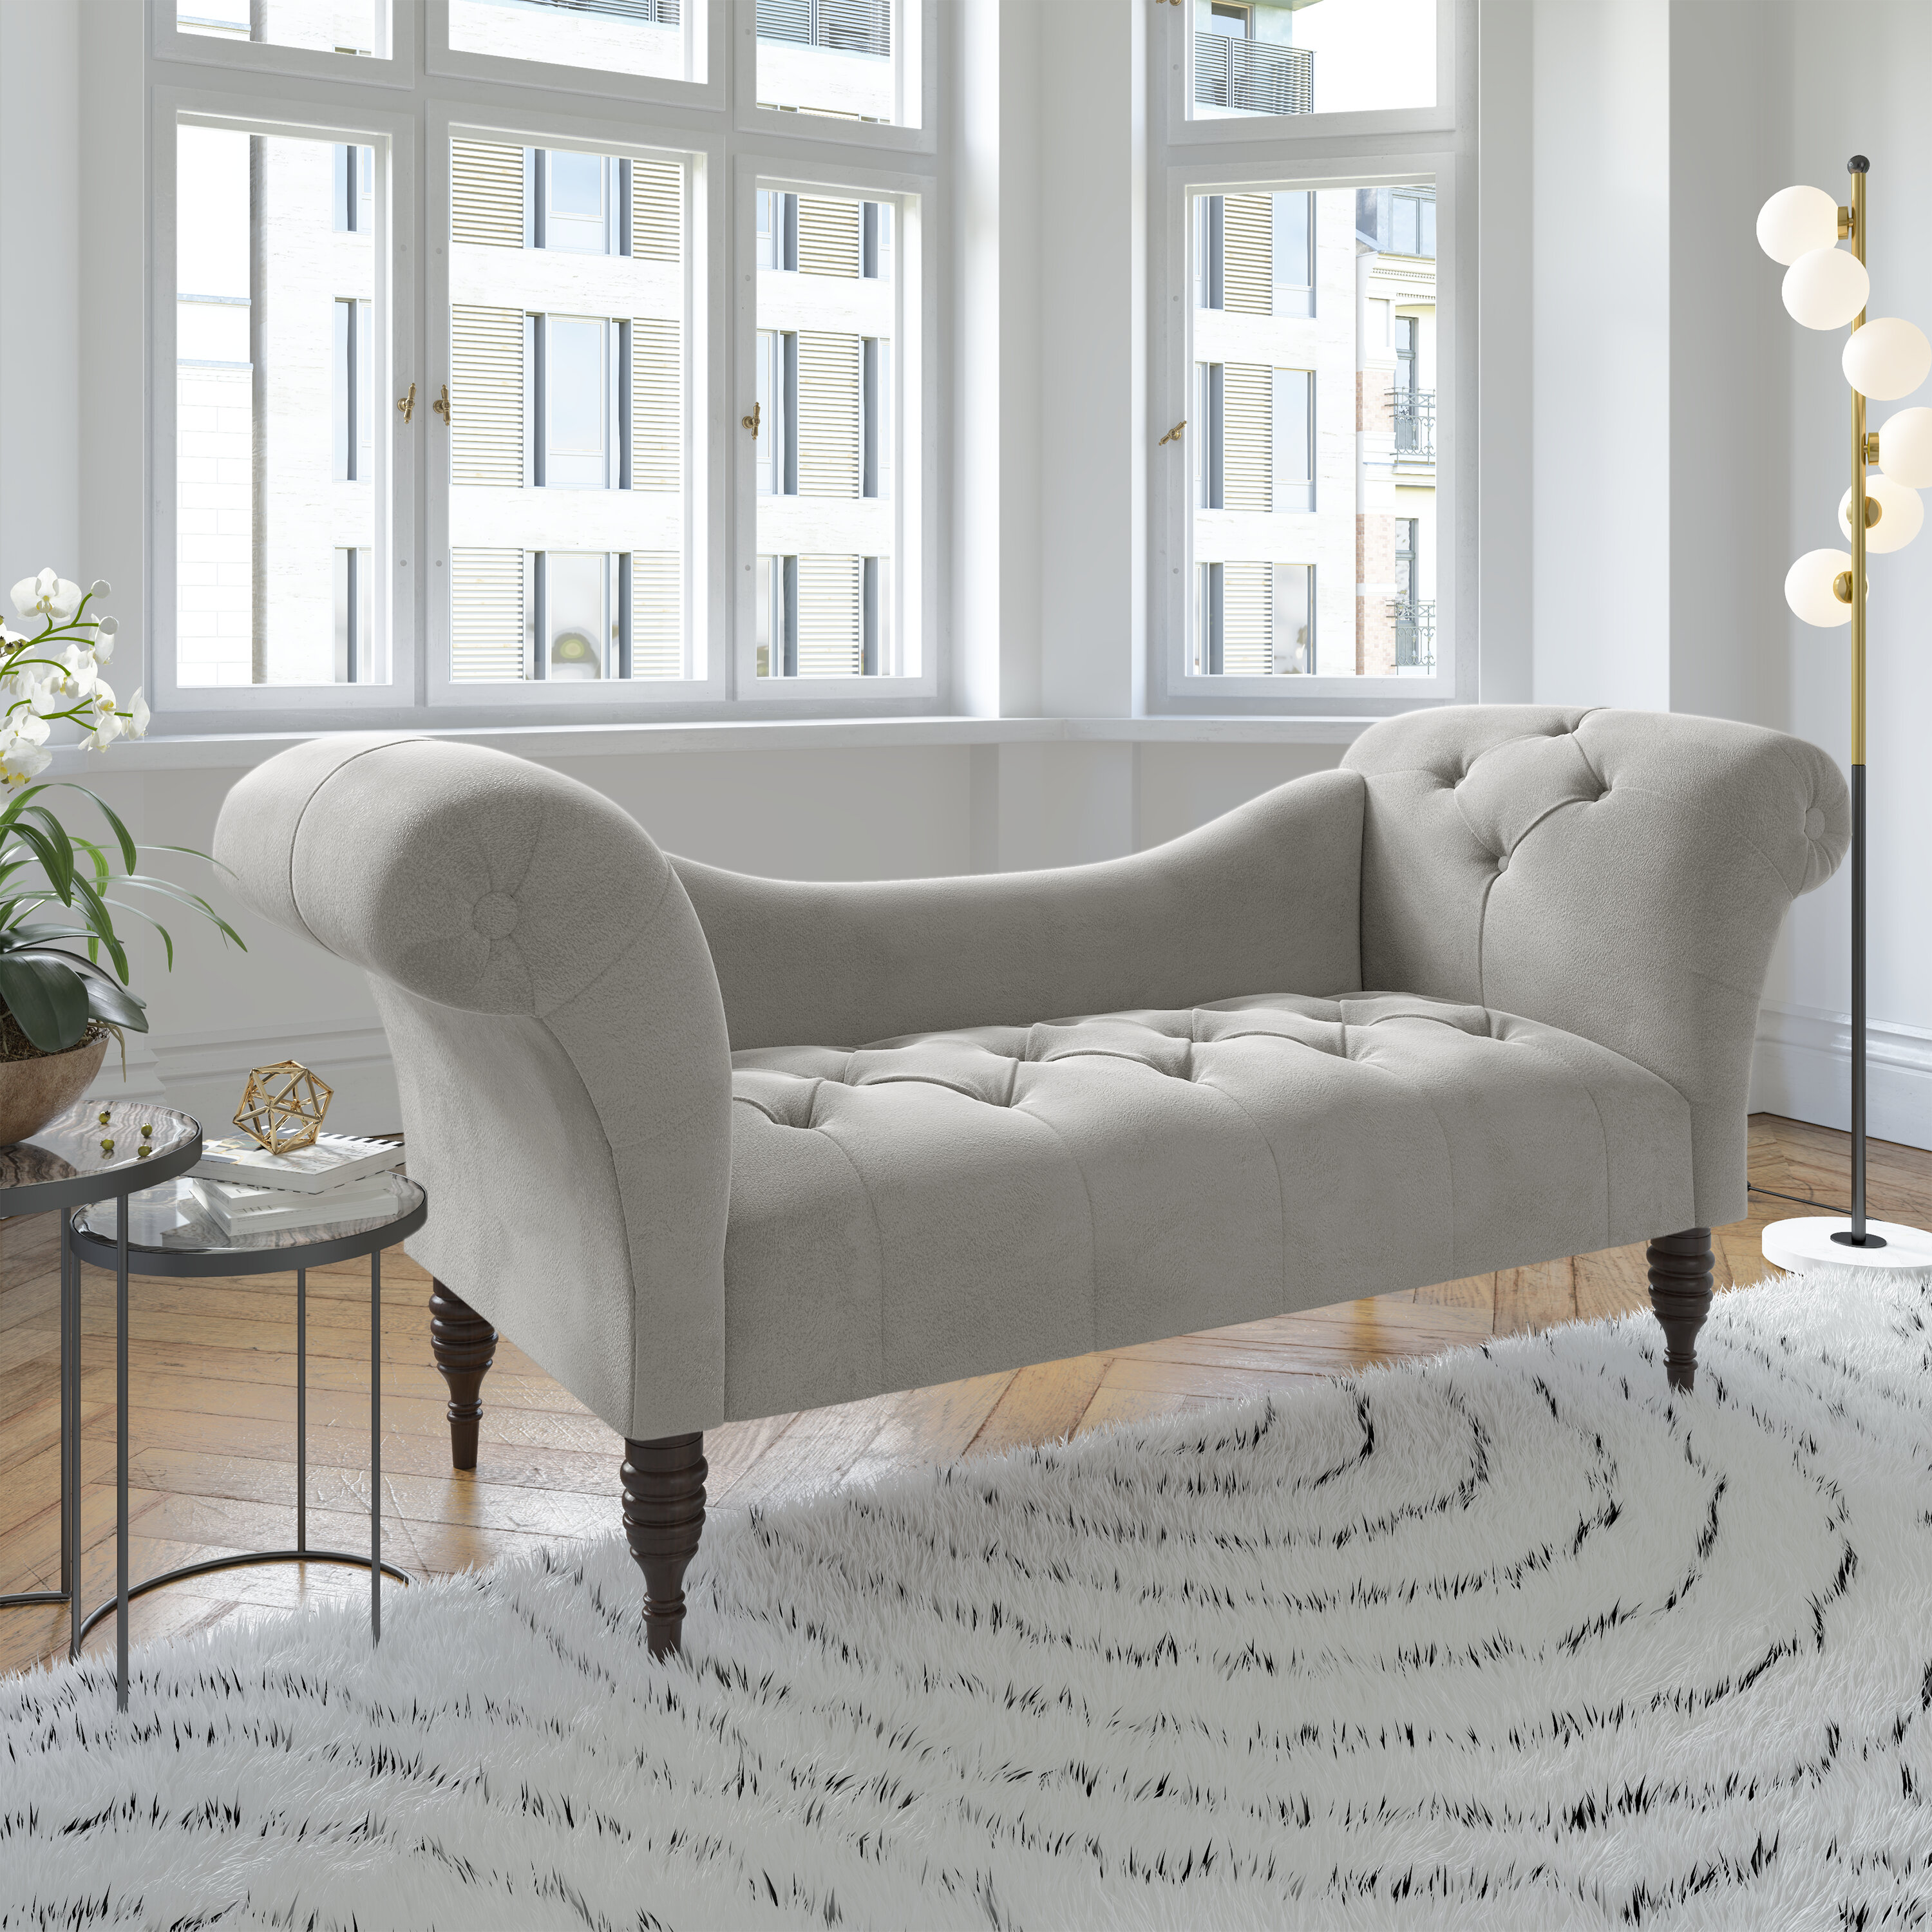 - Darby Home Co Dendy Tufted Chaise Lounge Wayfair.ca